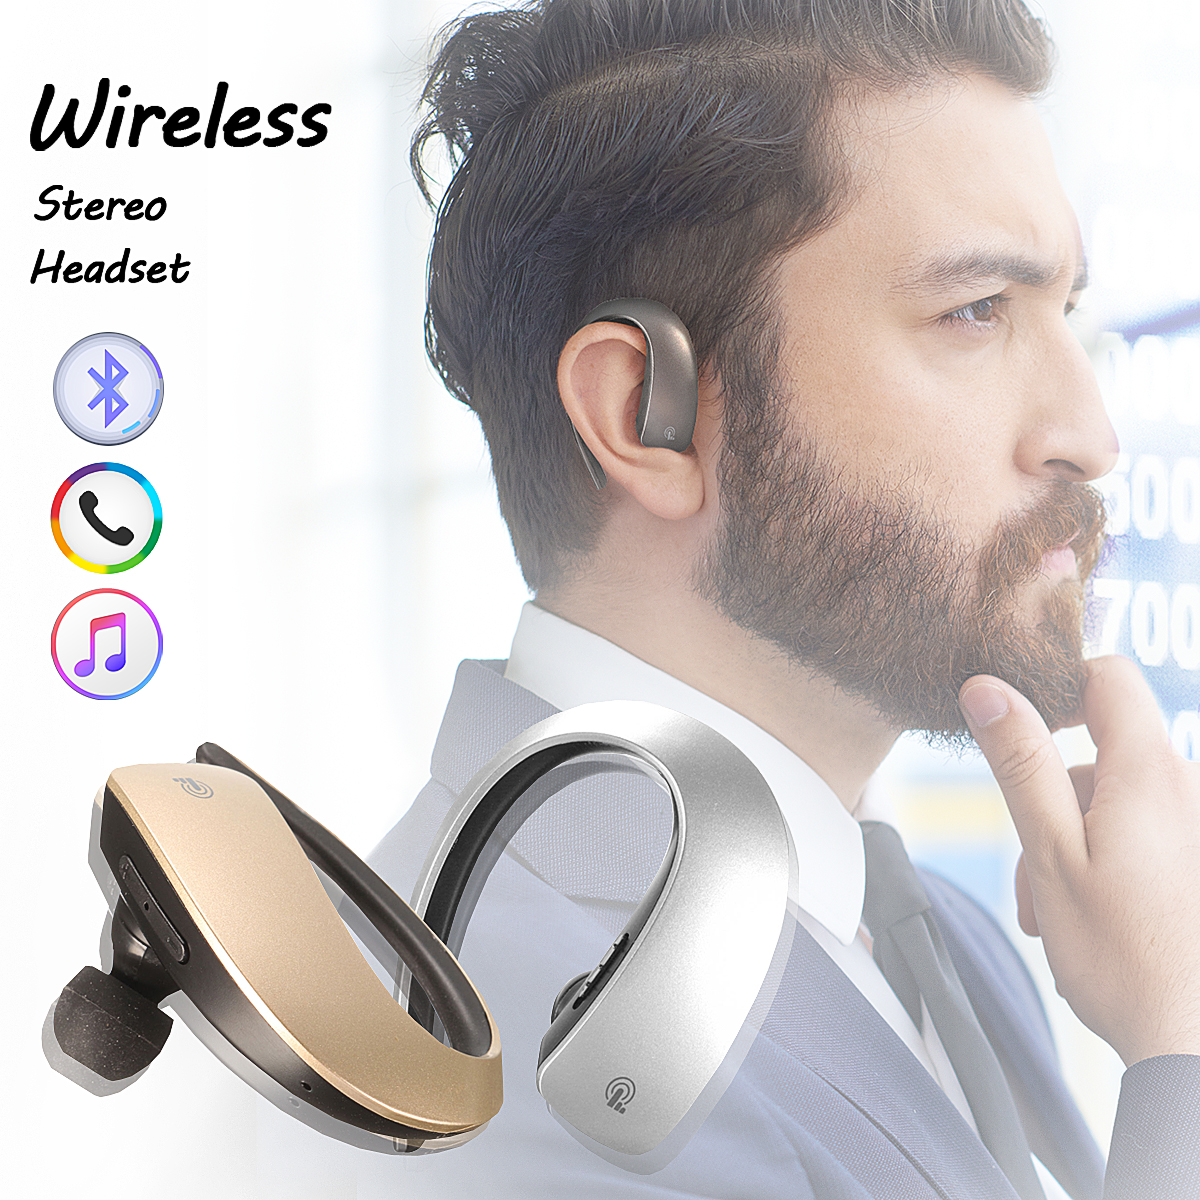 Universal Fashion Q2 Wireless bluetooth V4.1 Earhook Handsfree Sports In-Ear Stereo Headset Earphone Earbud